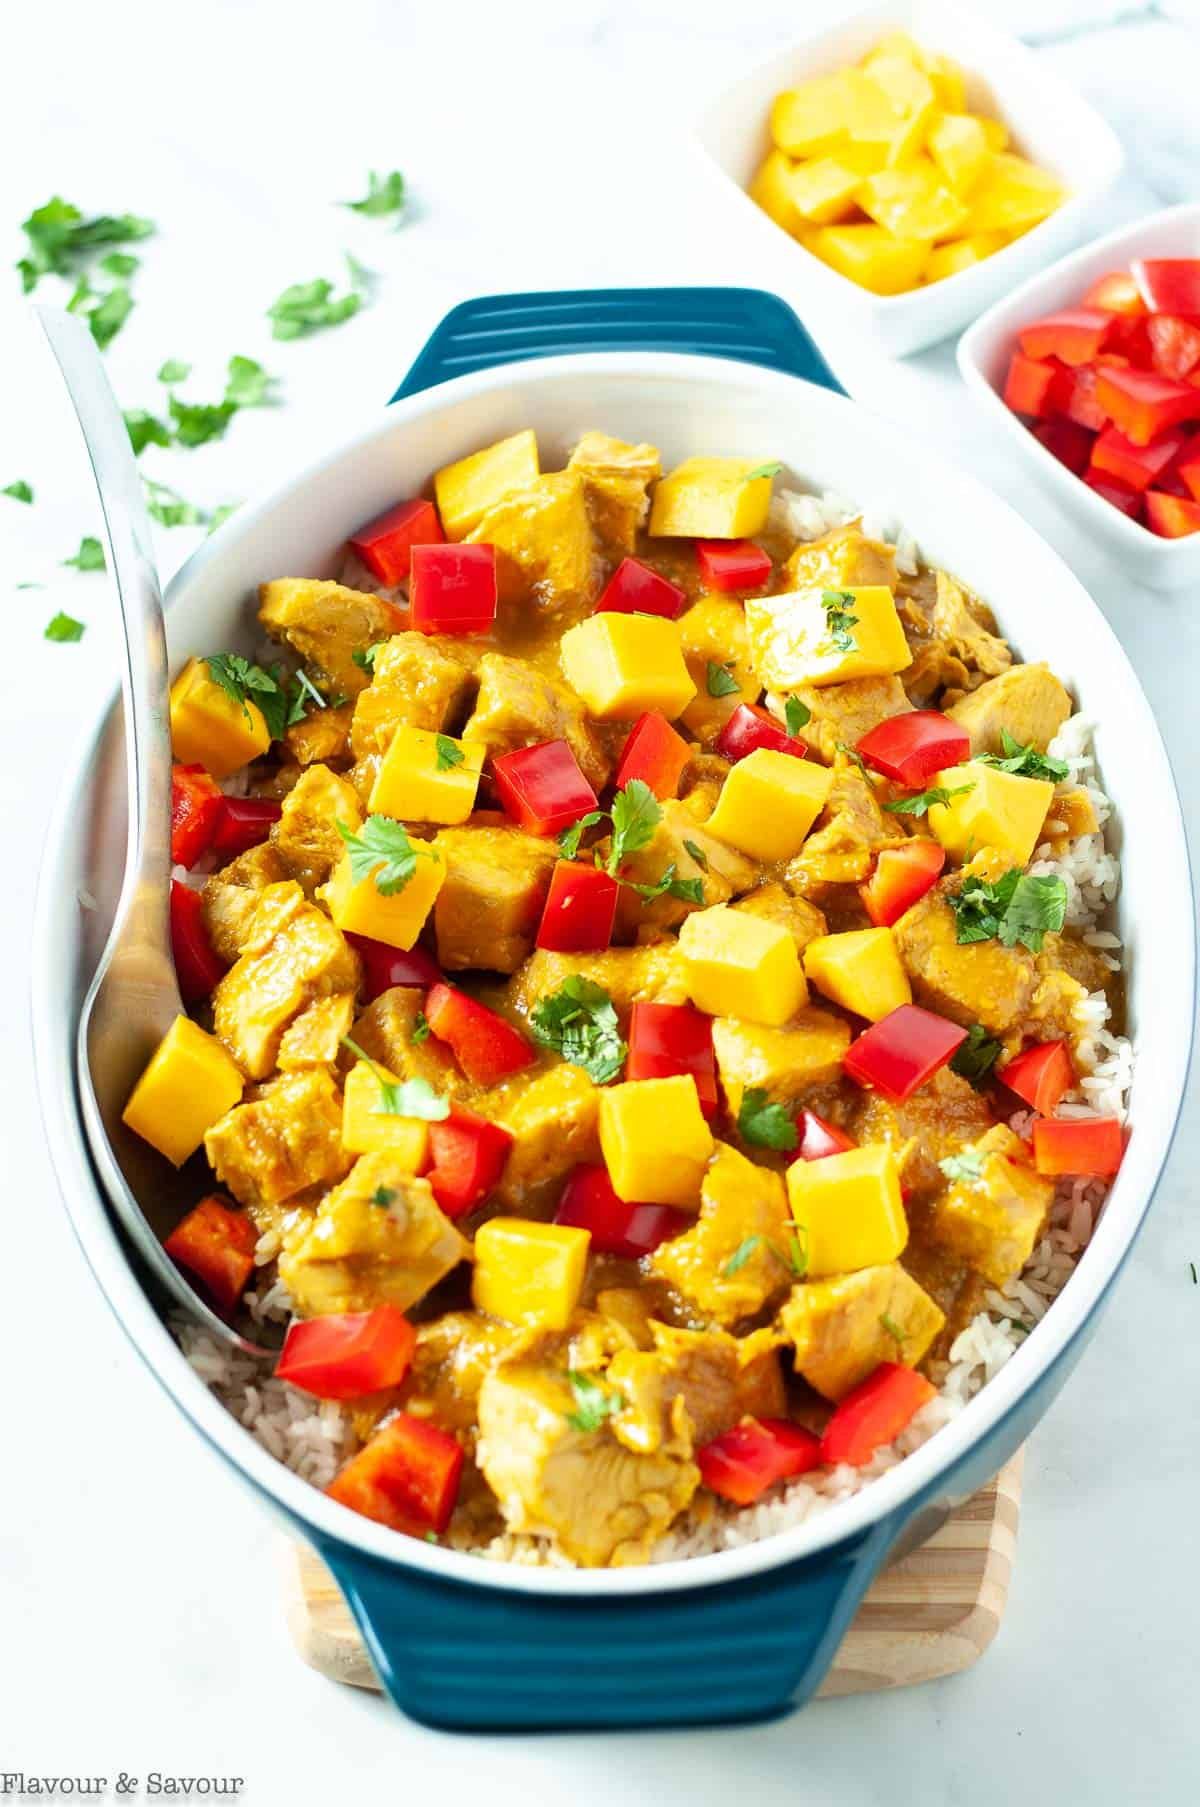 Thai Mango Chicken garnished with red pepper and diced mango.